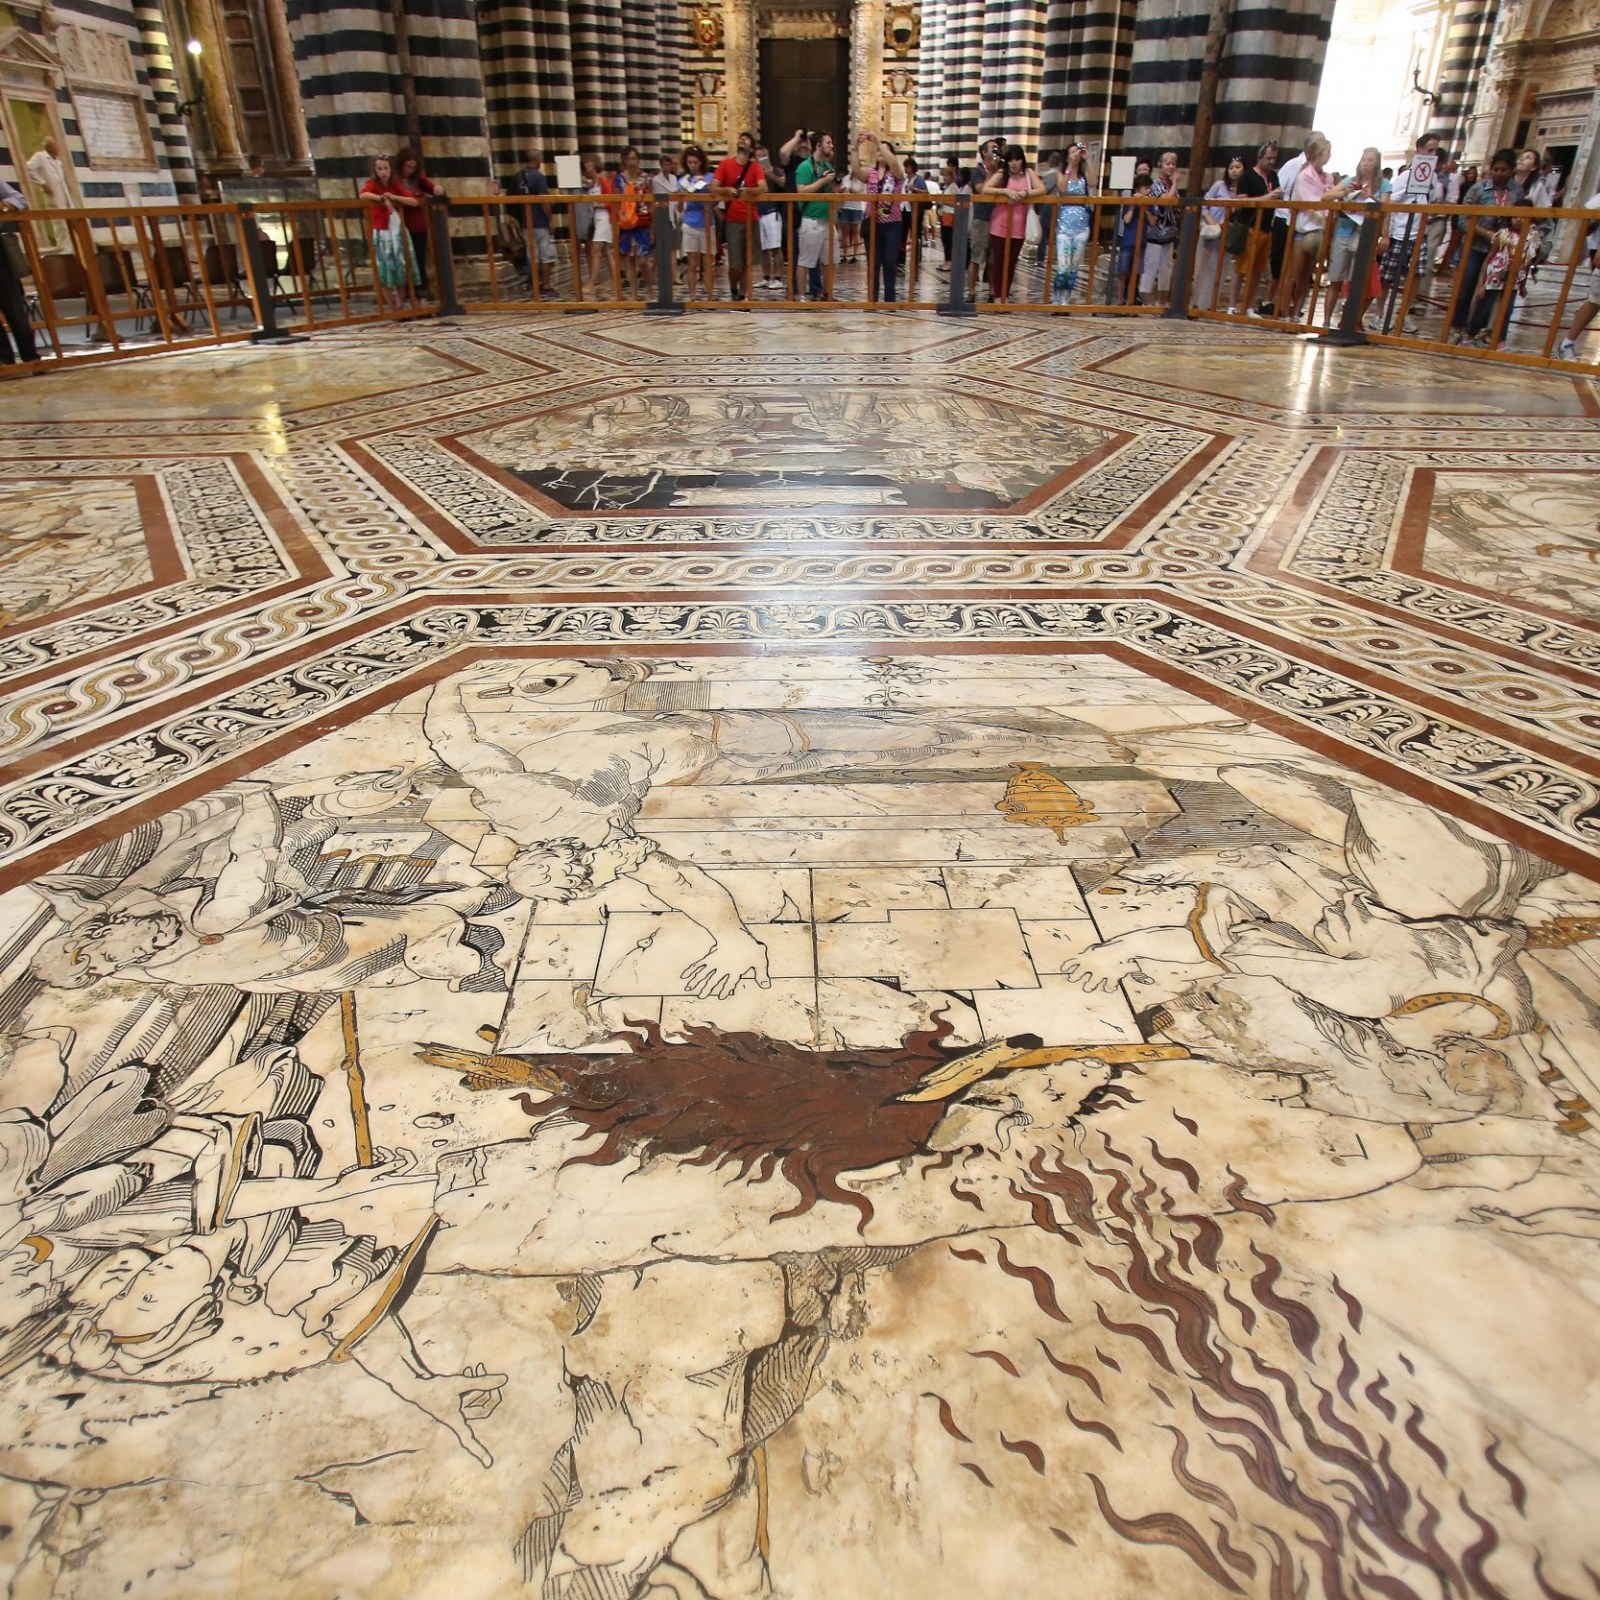 Michaelangelo's Marble Is Being Sold Cheap by Industrialists